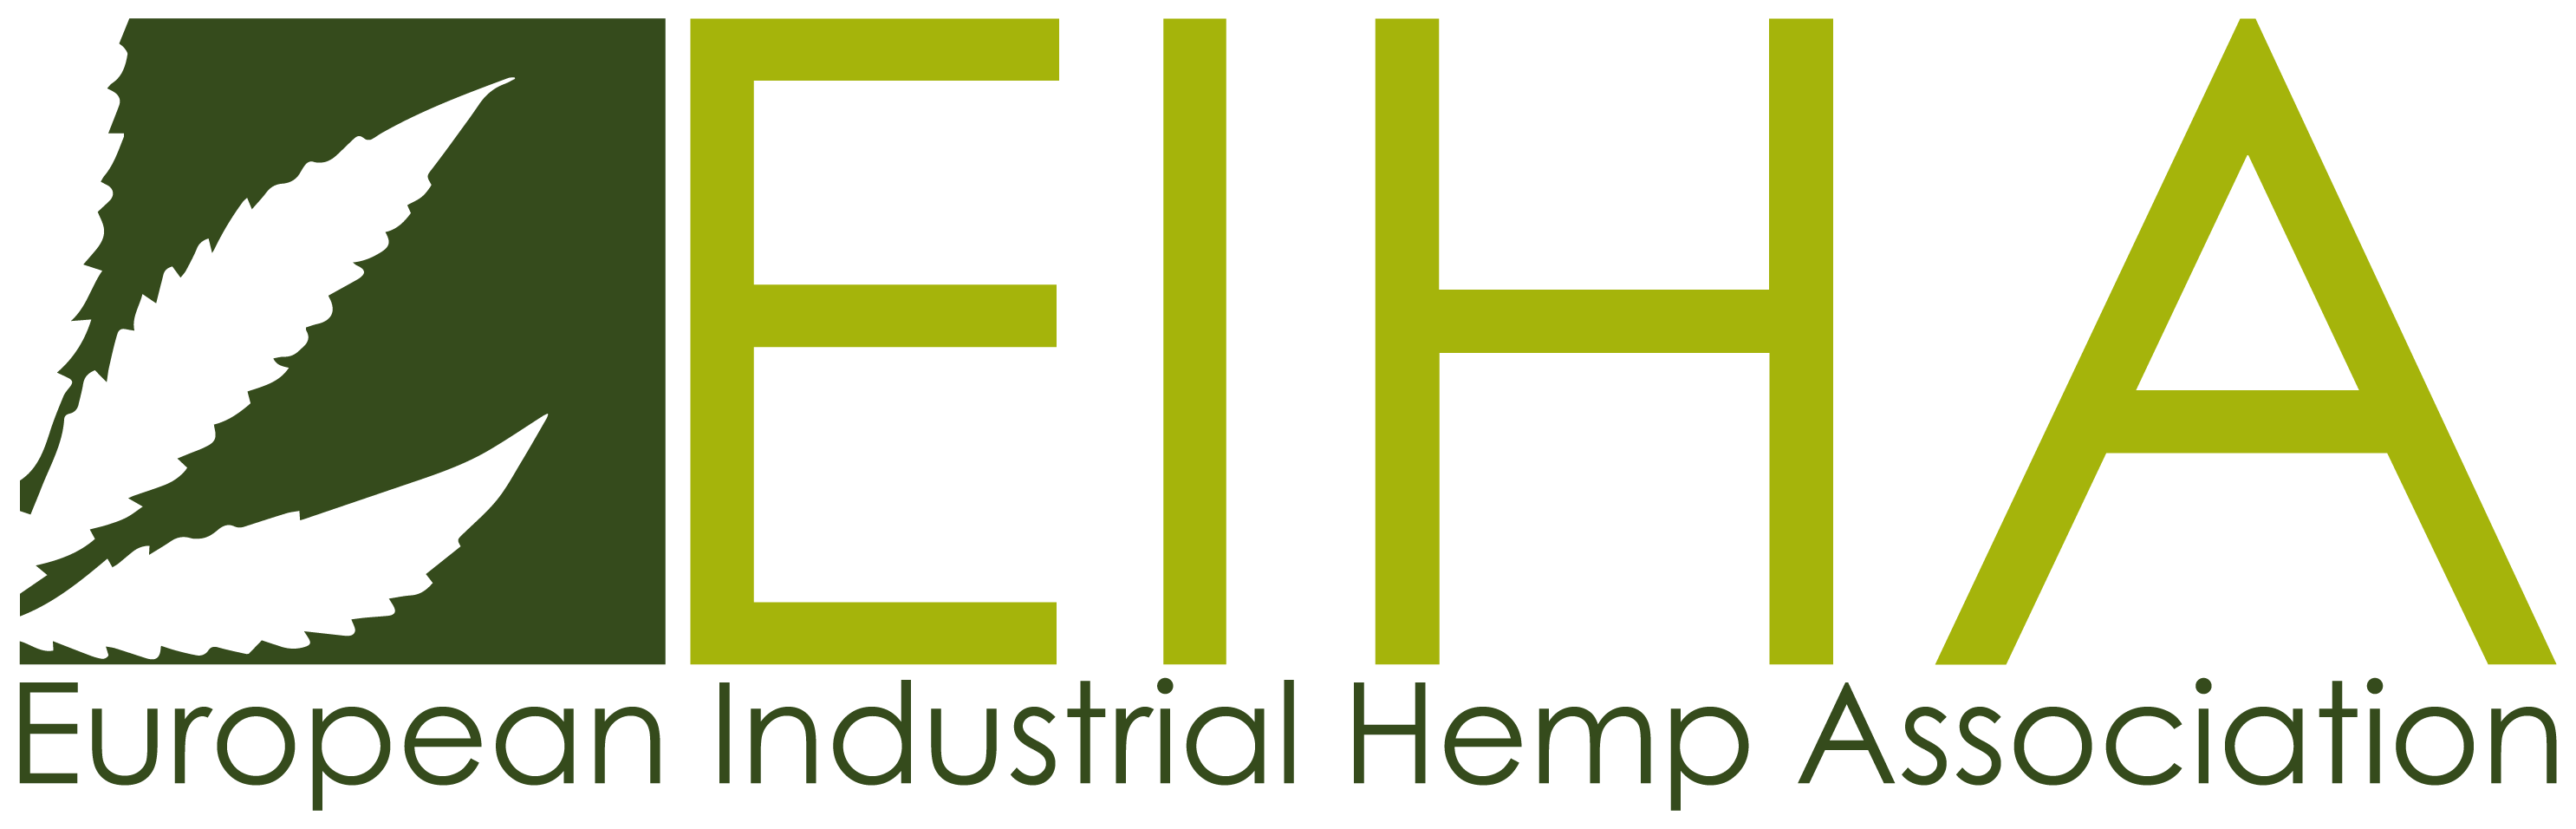 Eiha – European Industrial Hemp Association